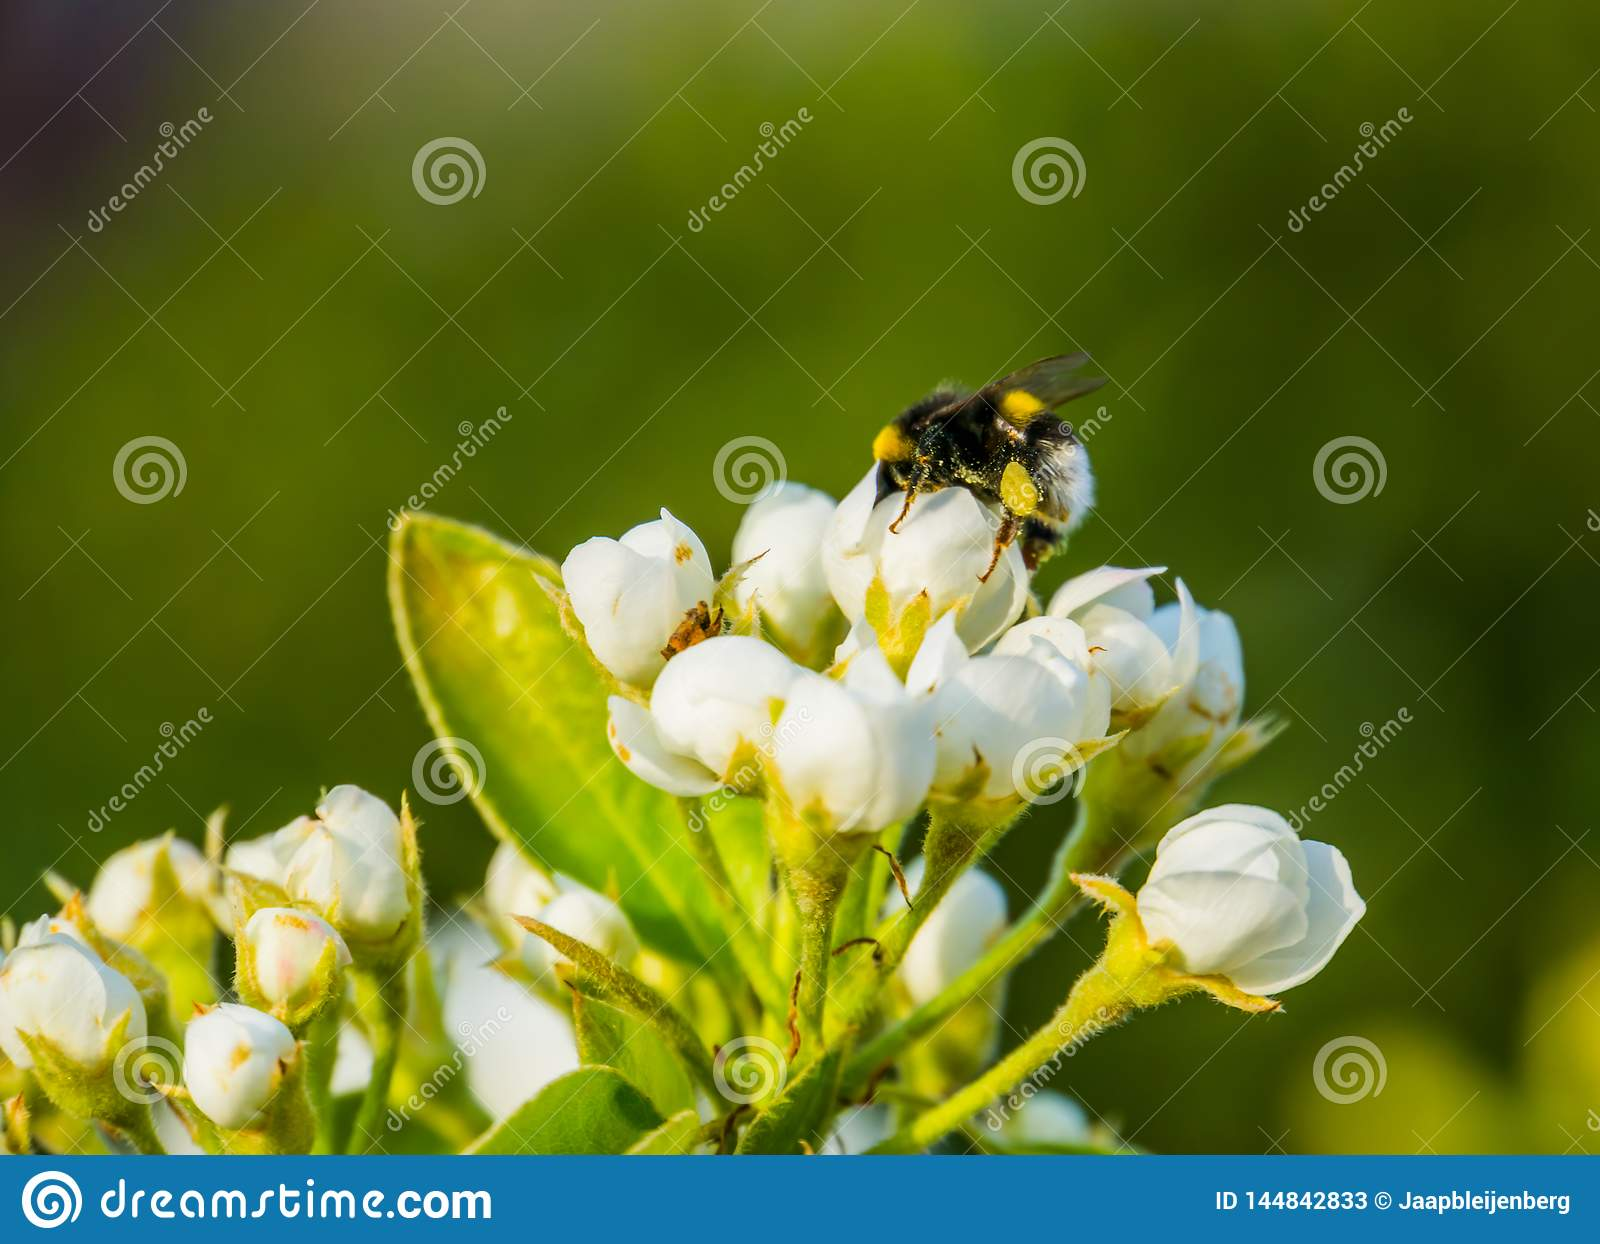 Bee pollinating white roses, macro closeup of a bee on white flowers, nature background